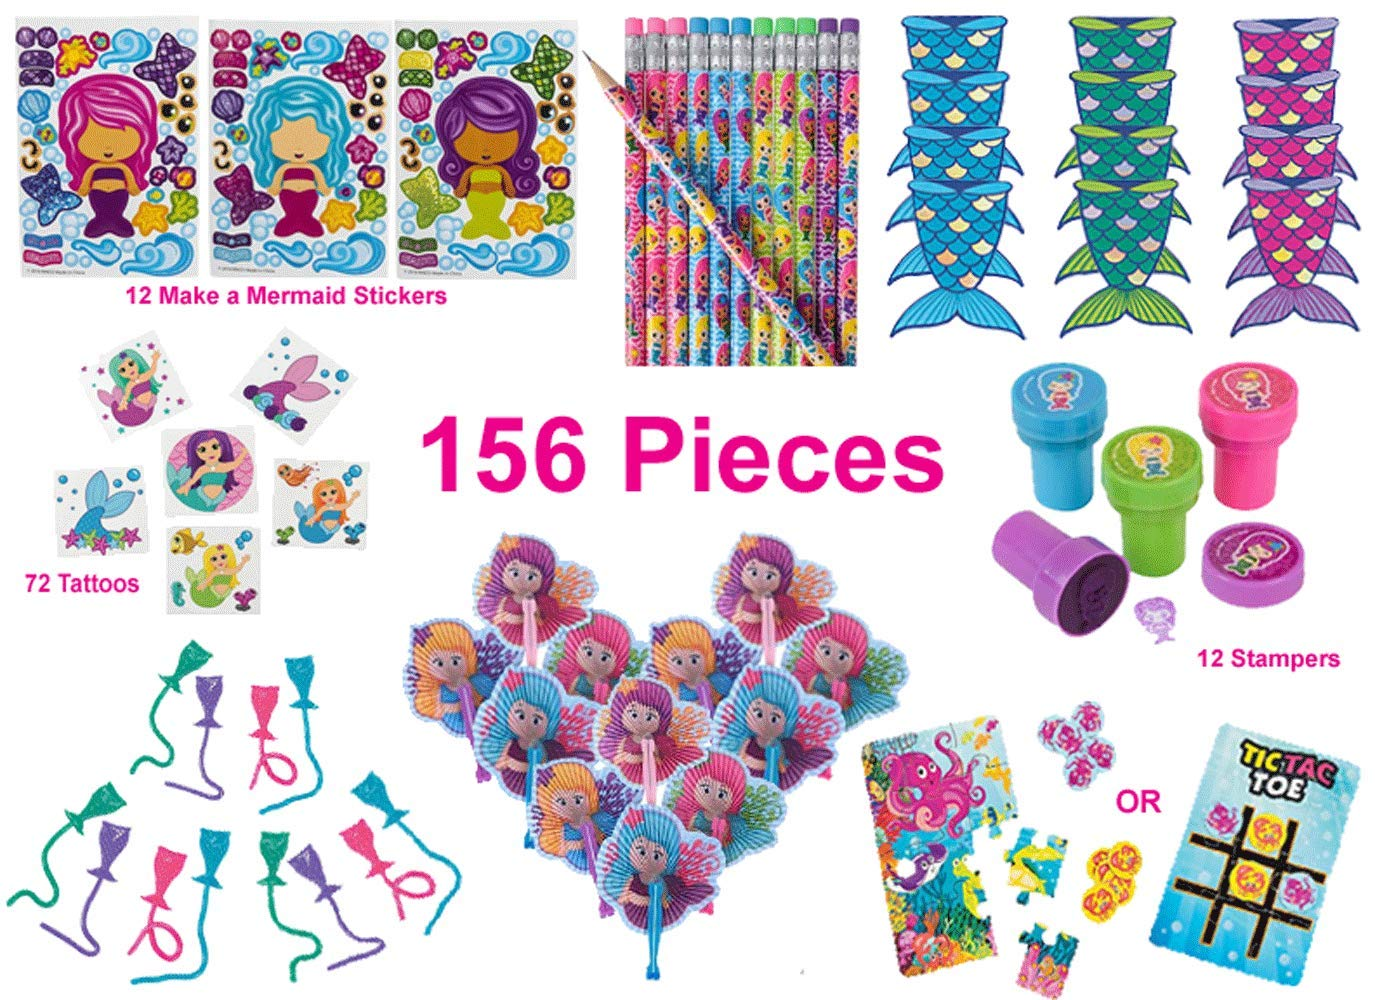 Mermaid Party Favors, Birthday Pack for 12 Kids - 156 Pieces - Novelty Toys - Notebooks, Pencils, Stampers, Make a Mermaid Stickers, Folding Fans, Sticky Tails, 12-Piece Sea Life Puzzles/Tic-Tac-Toe Game, 72 Tattoos